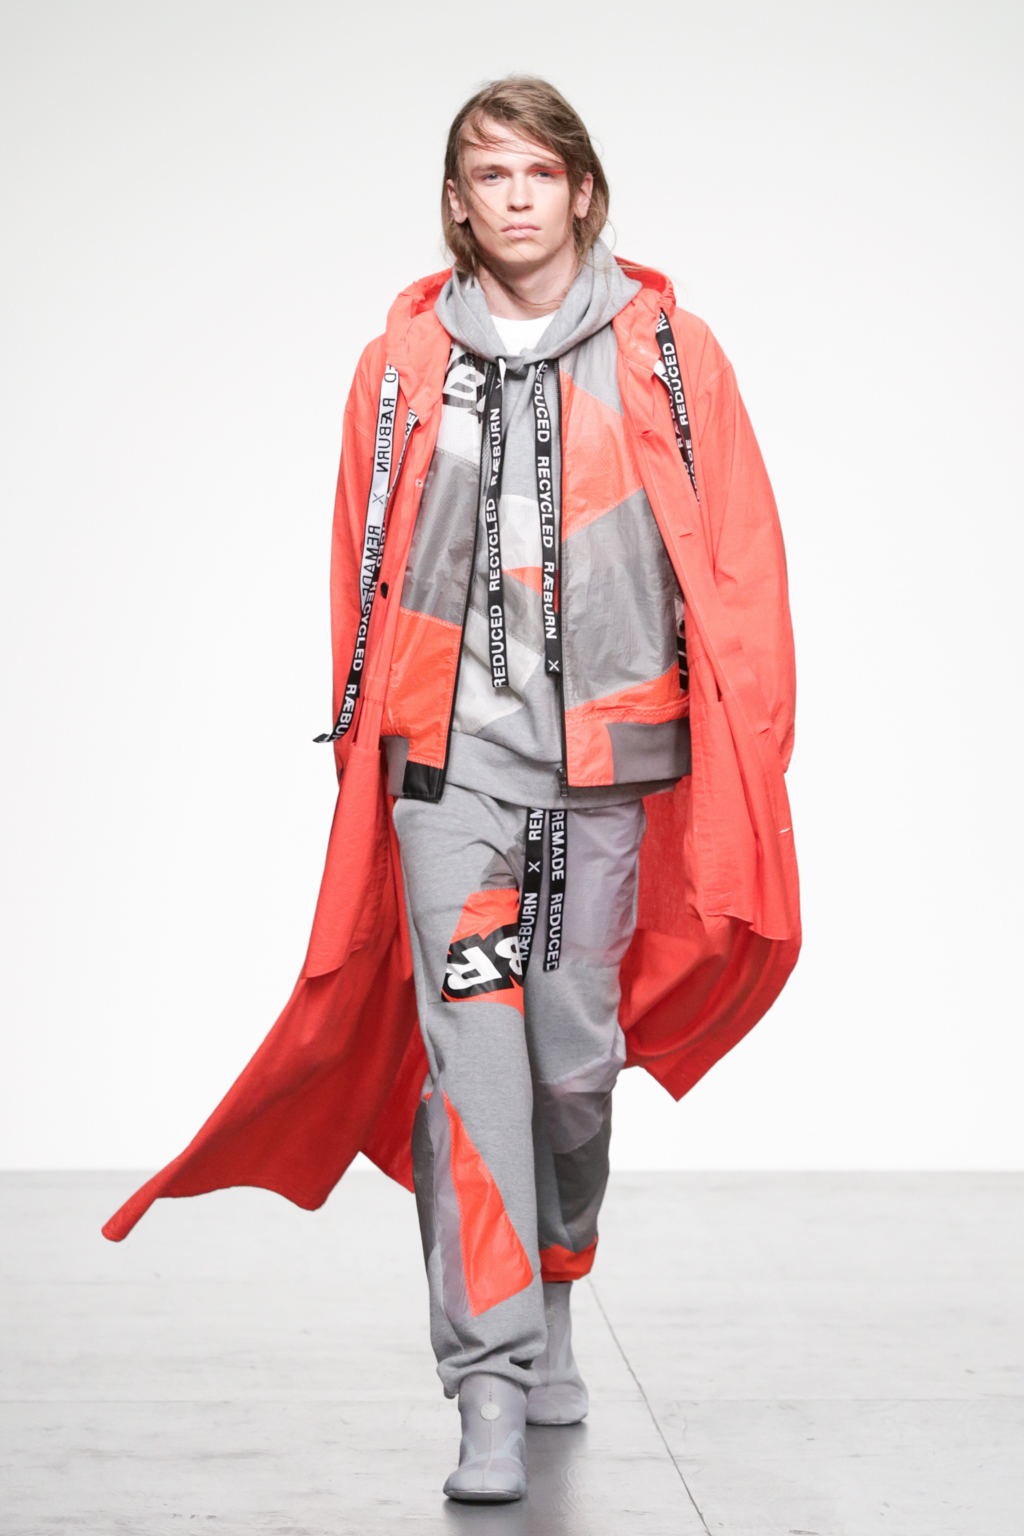 LFWM SS18 - Christopher Raeburn - Kimberley Archer - The Upcoming-1